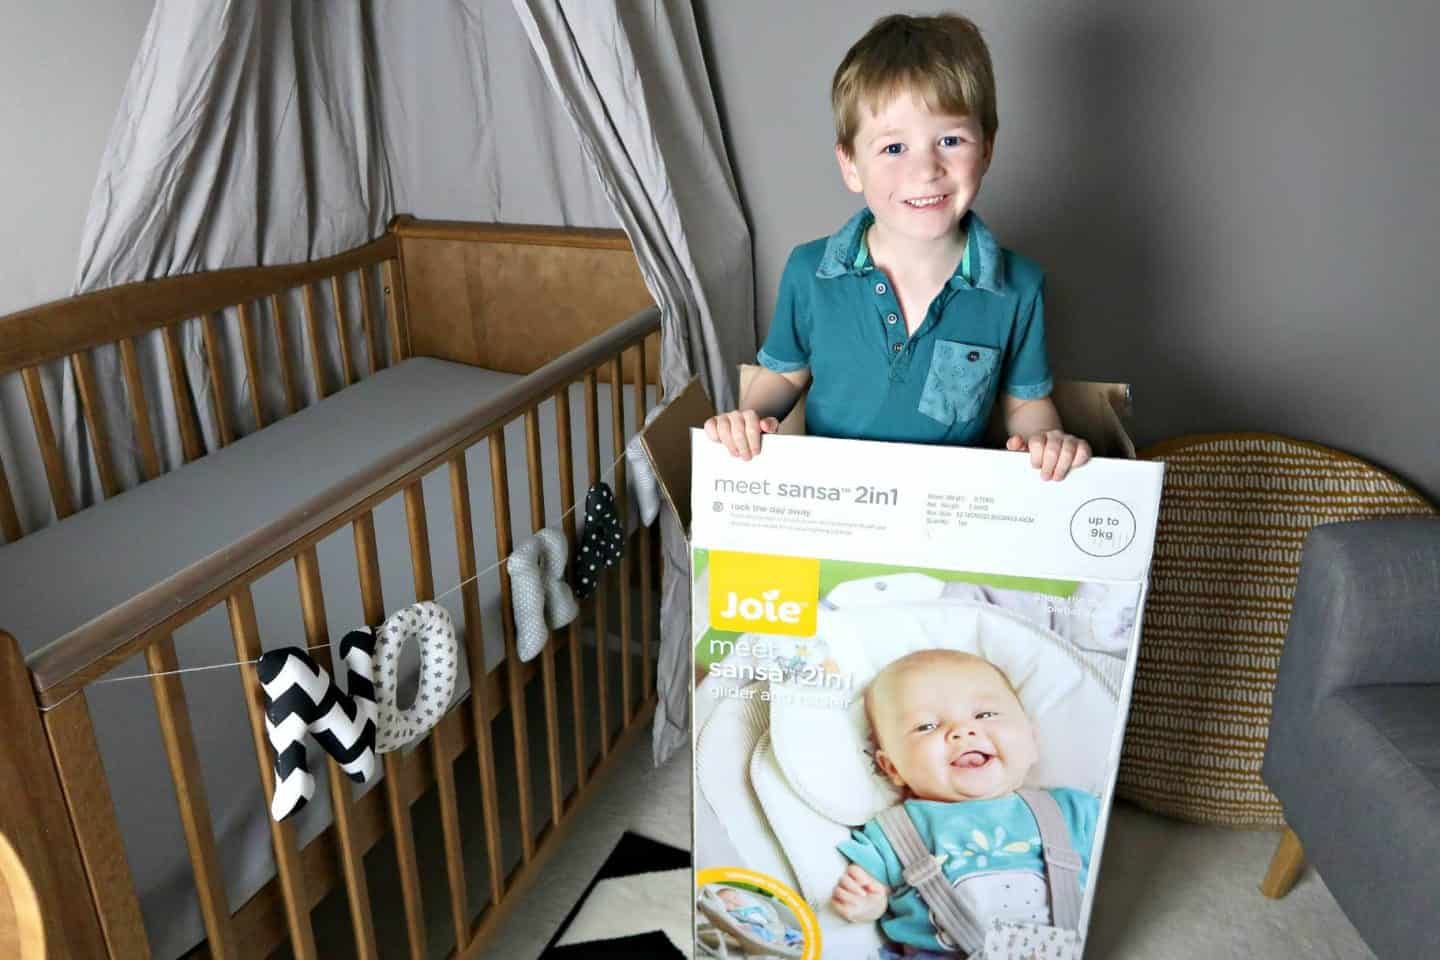 Smiling boy standing in a Joie Sansa 2 in 1 box